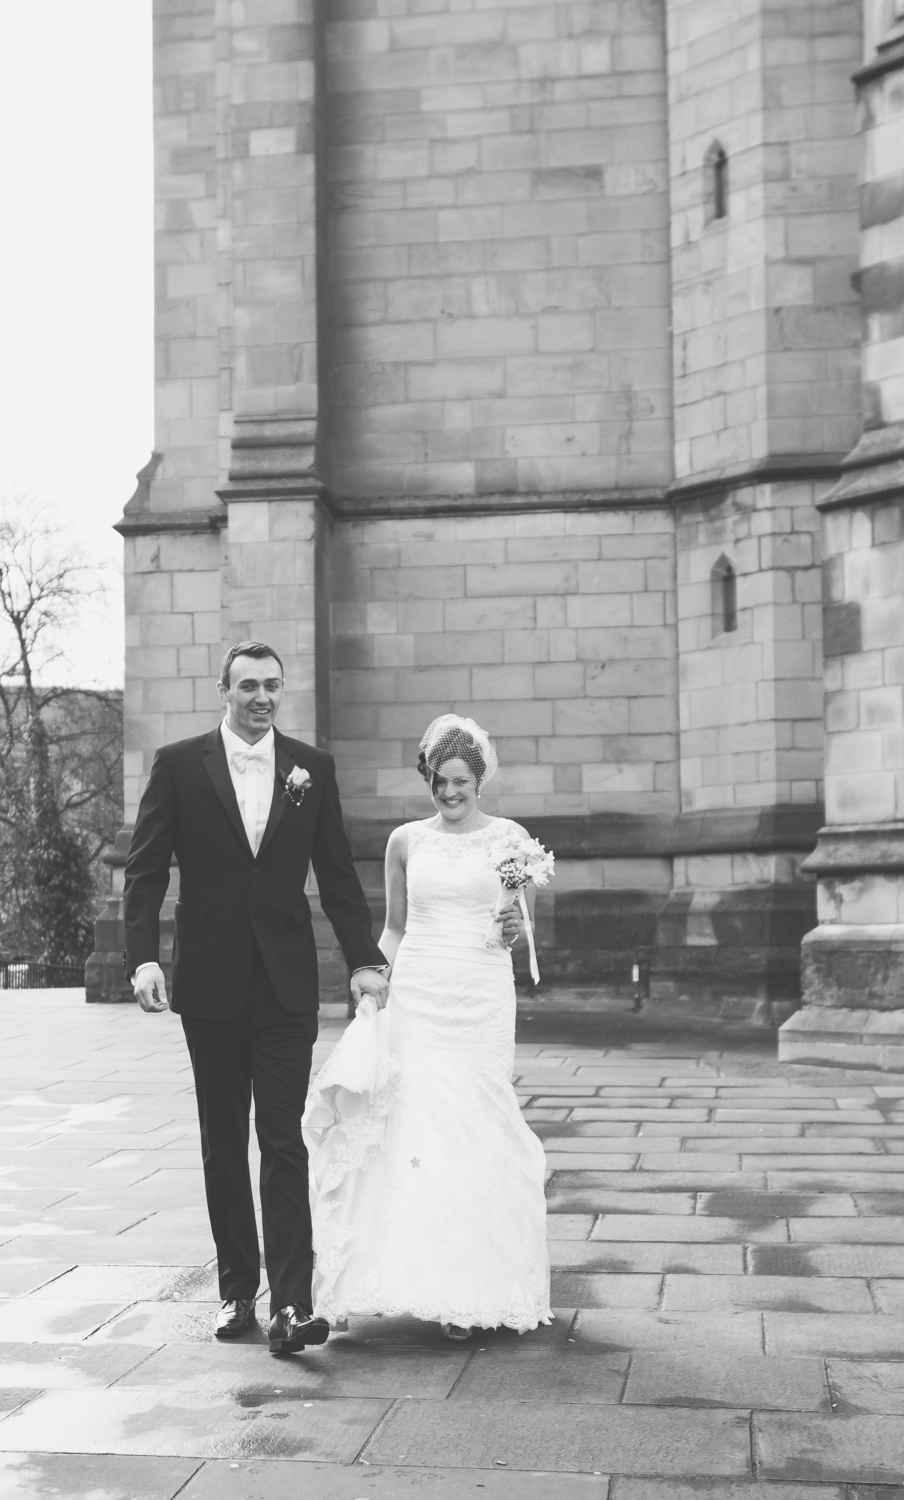 The bride and groom leaving the church - a beautiful black and white image